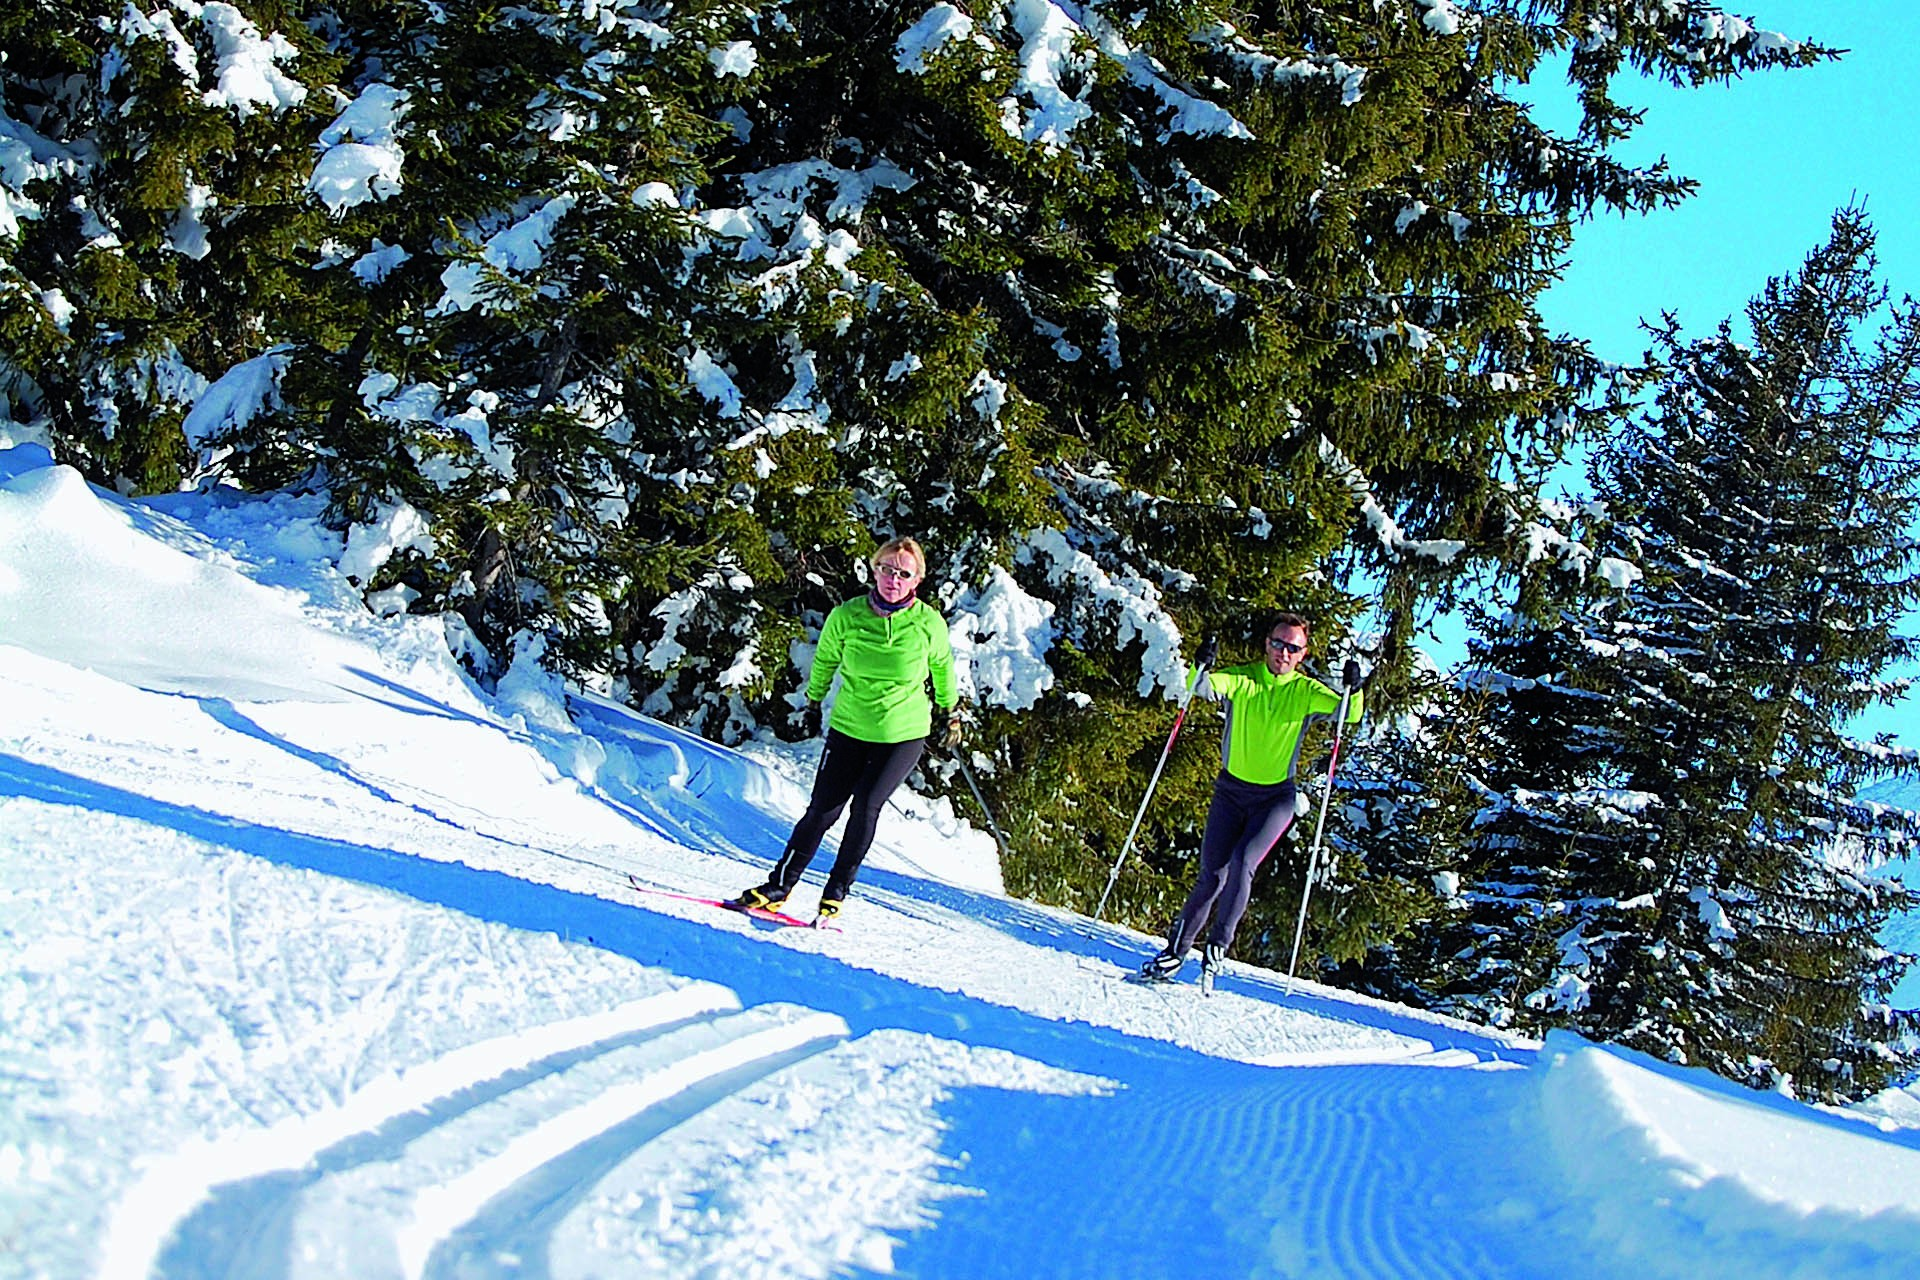 Cross-country skiing lessons